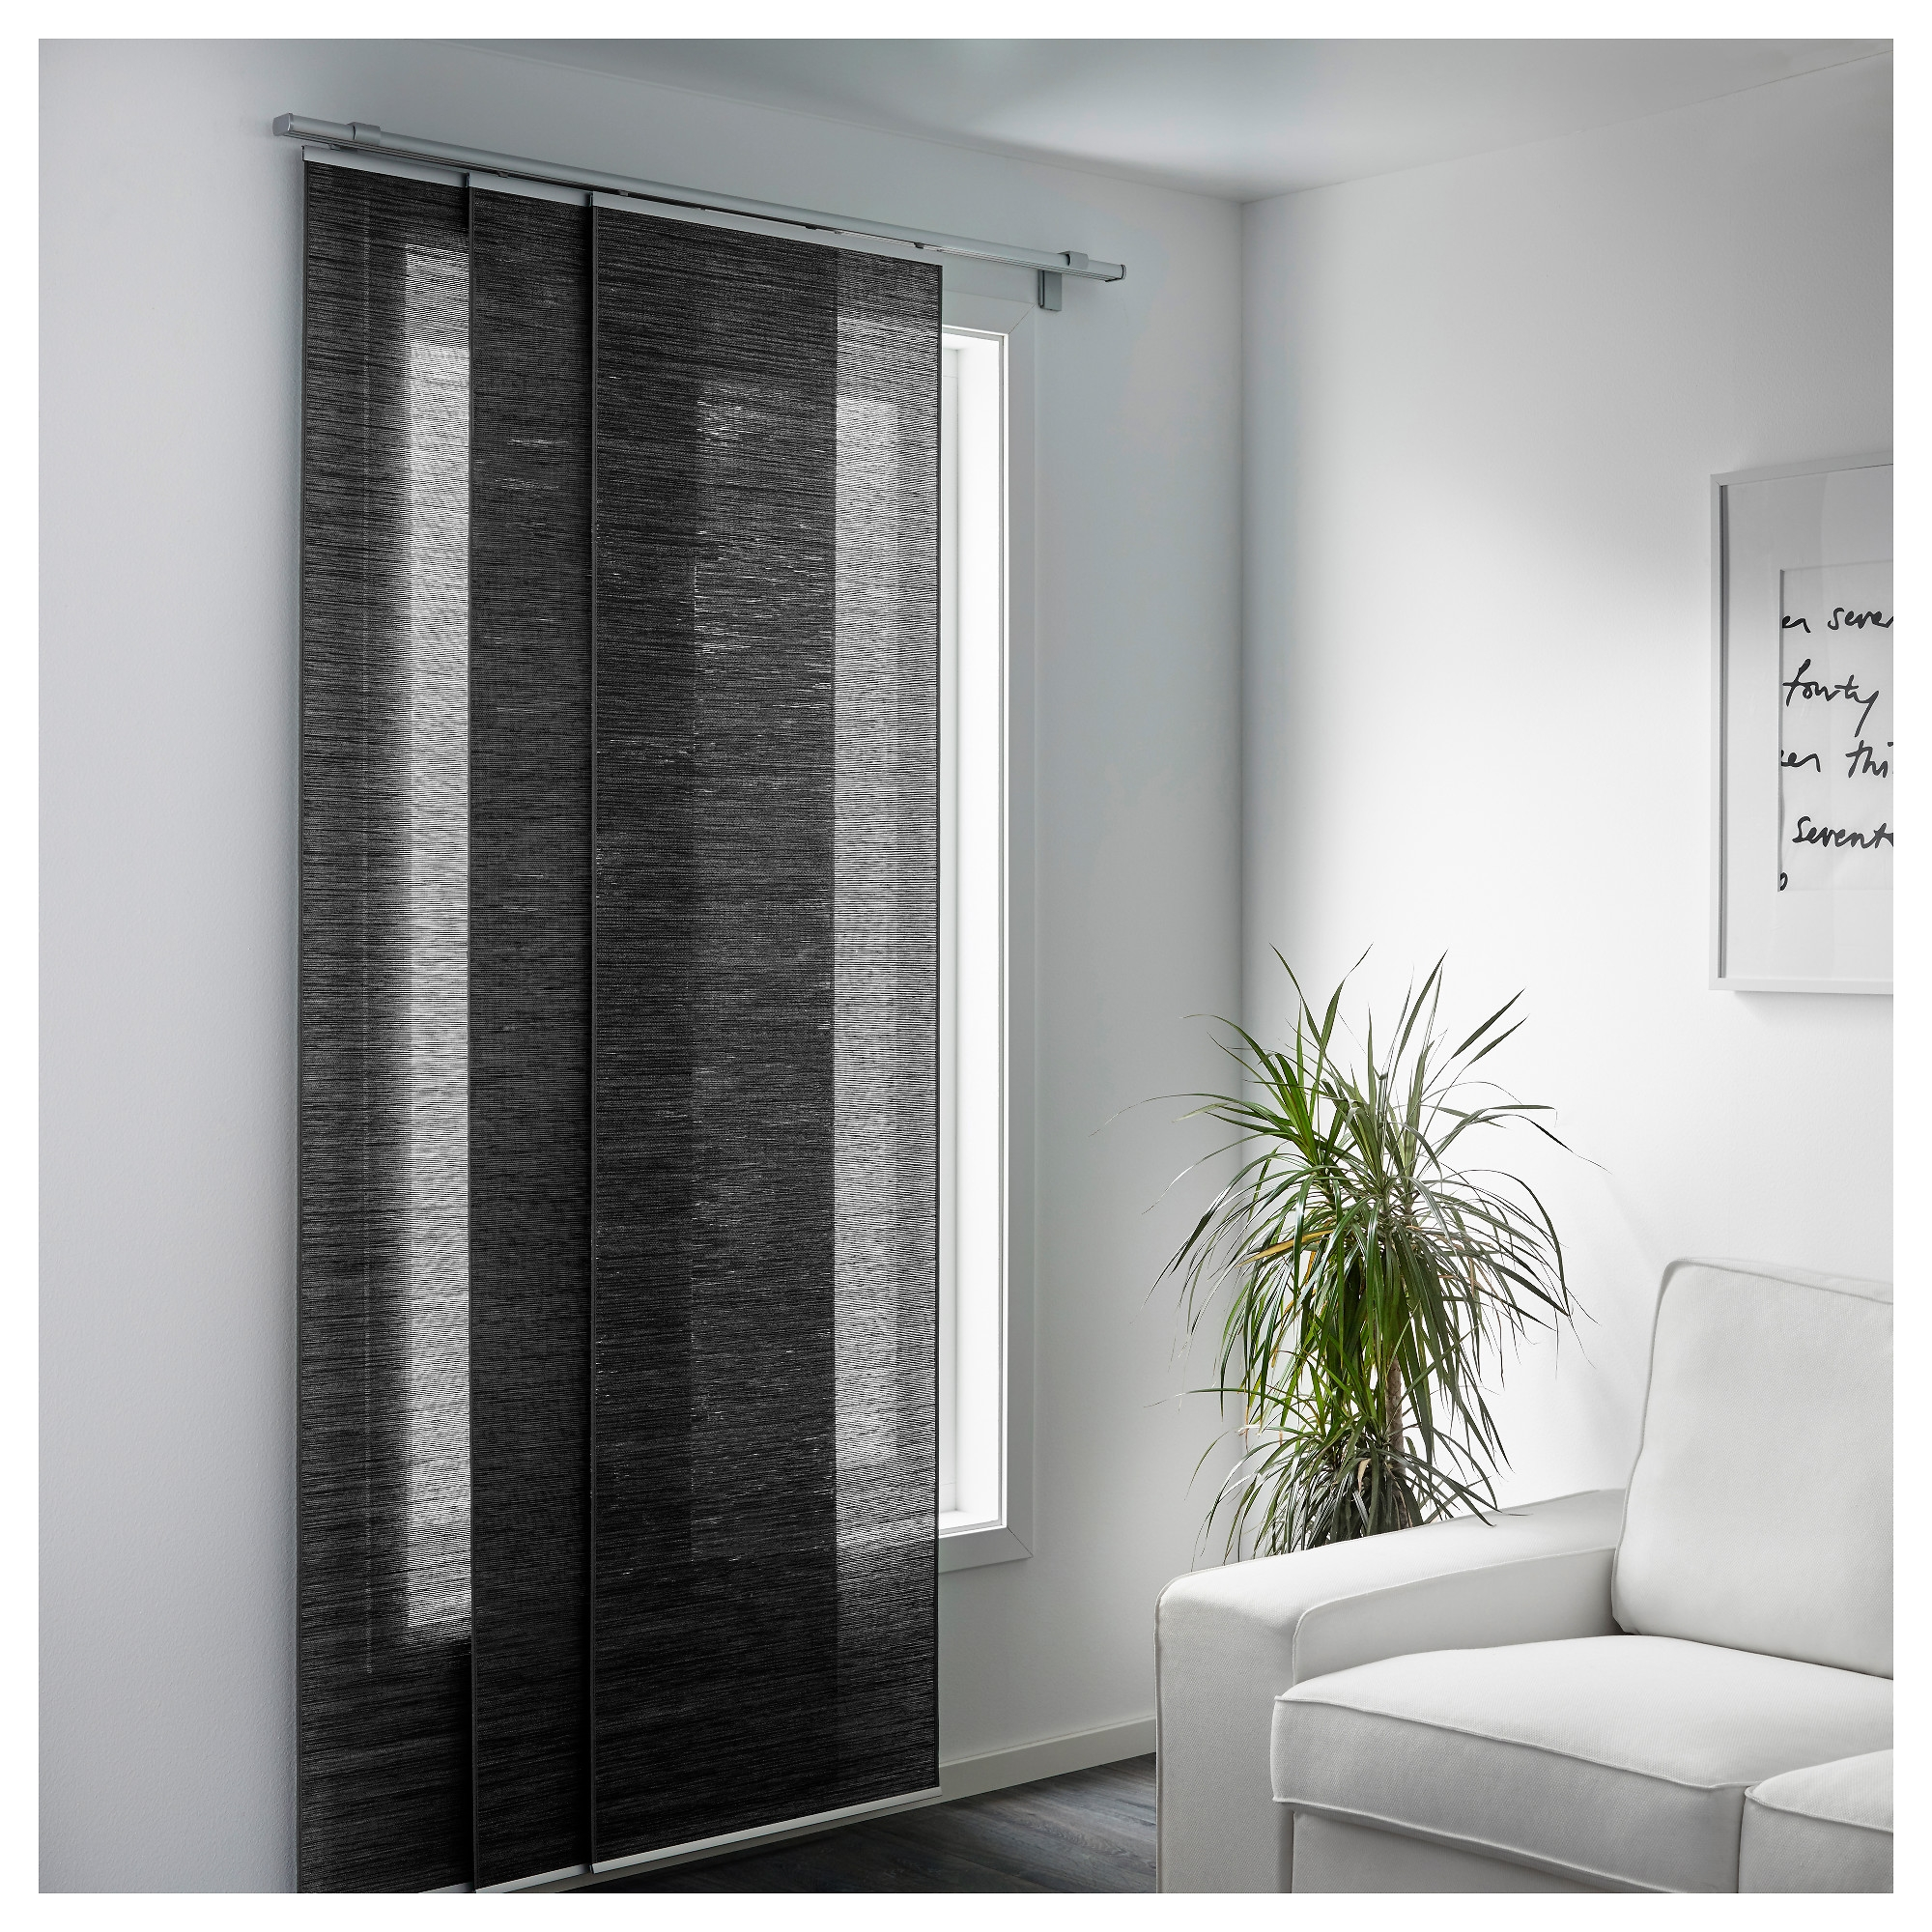 Fnsterviva Panel Curtain Ikea Regarding Room Curtain Divider IKEA (Image 11 of 25)